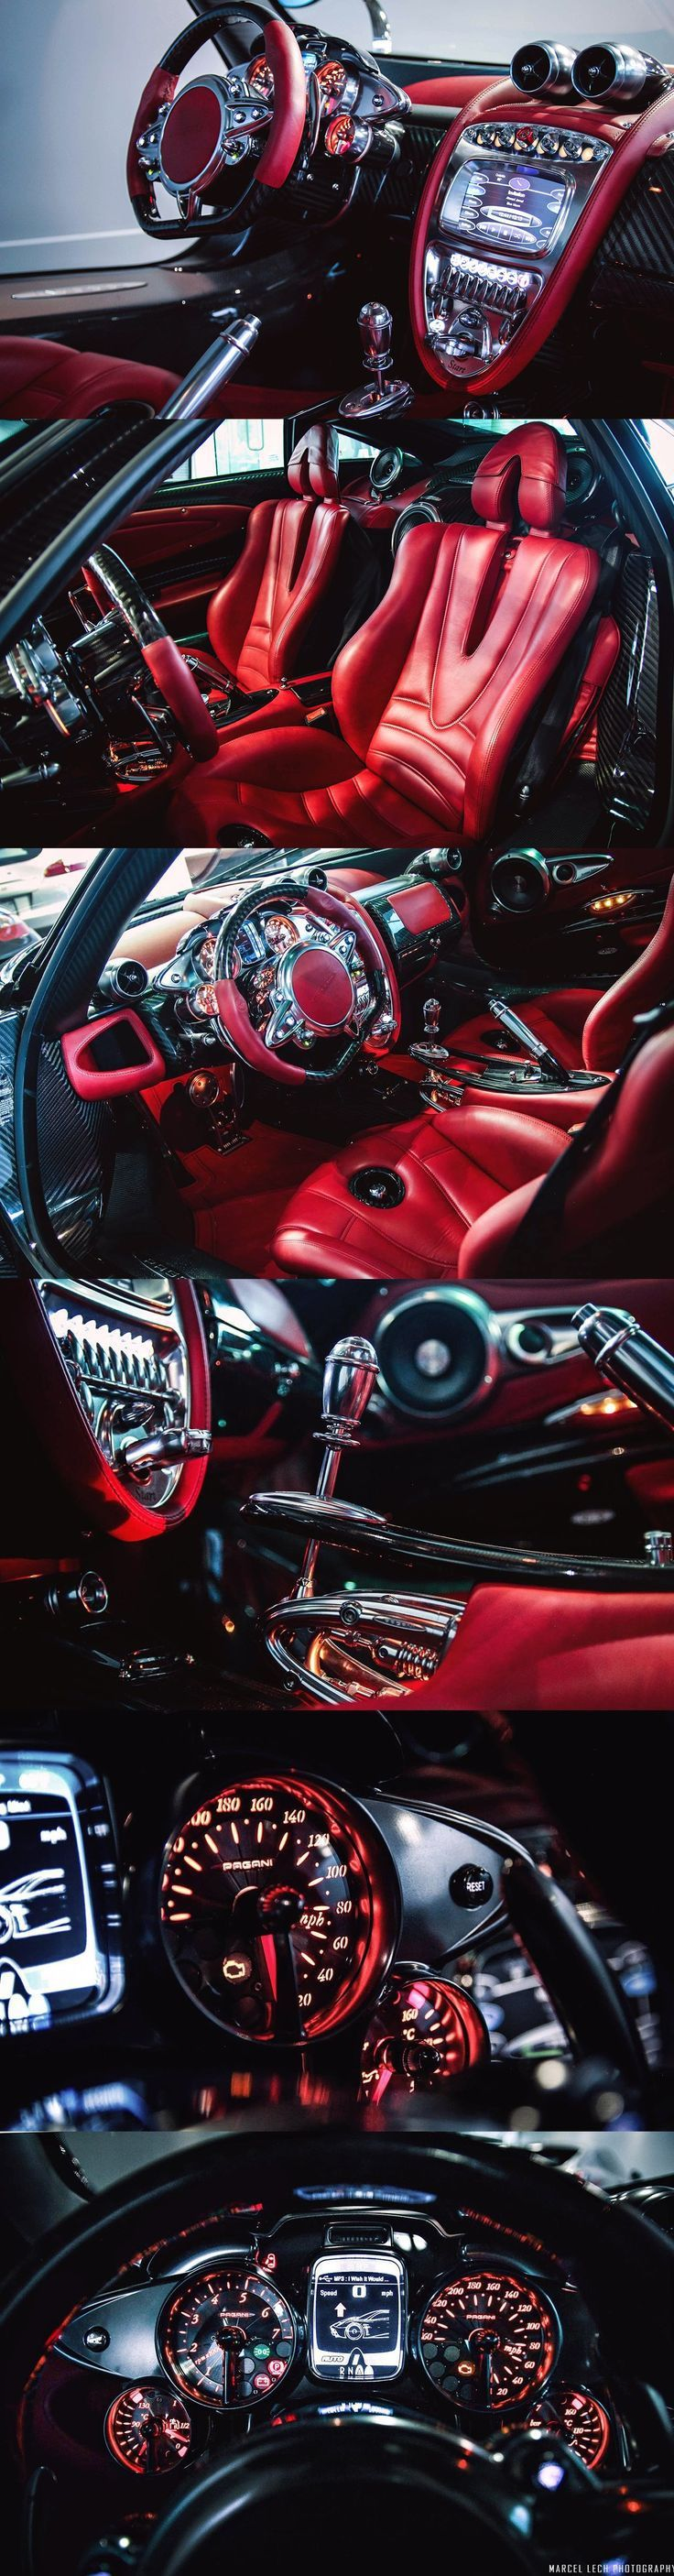 ☆ Pagani Huayra ☆ LOVE THIS! Pagani Huayra Interior Get Free Email Updates!Signup now and receive an email once we publish new content. I will never give away, trade or sell your email address. You can unsubscribe at any time. Sharing Is Caring....2000 Related